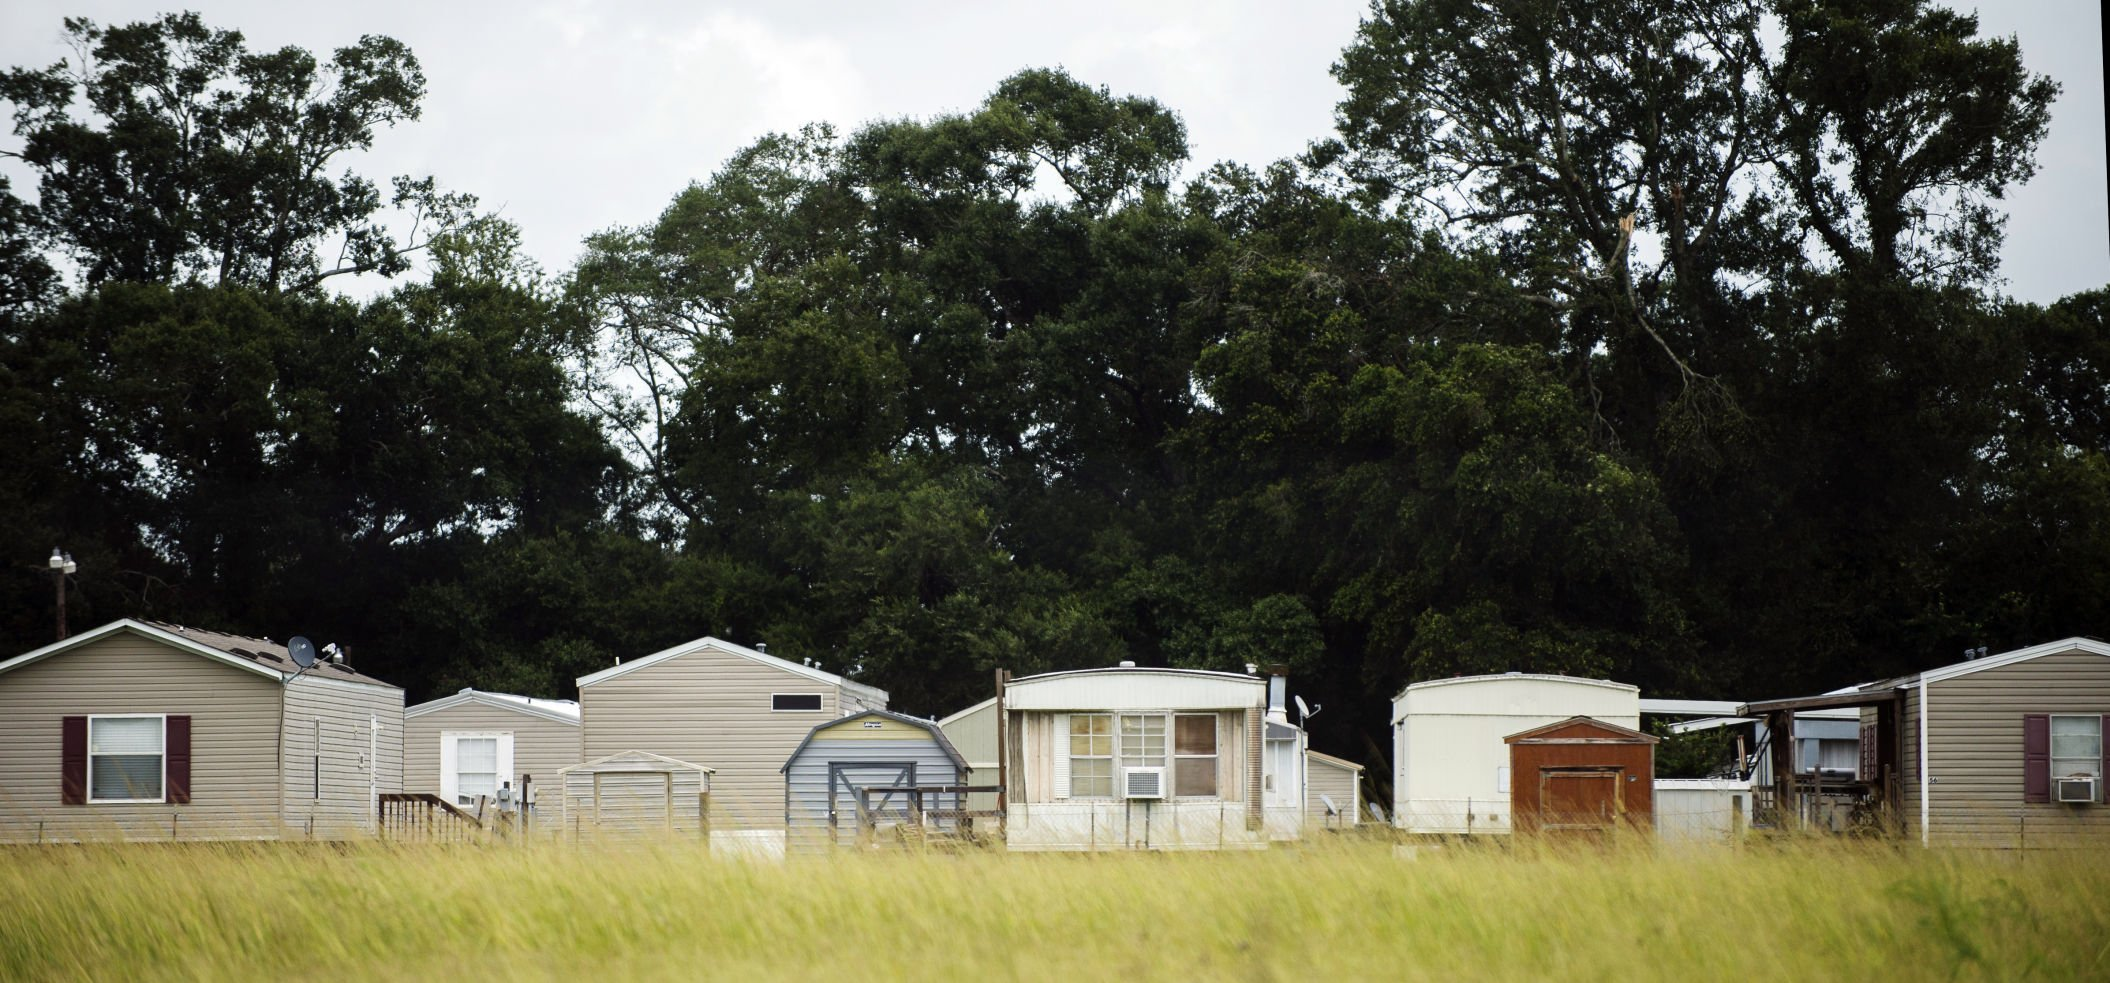 Youngsville council addresses mobile home restrictions passed after Southside High opening